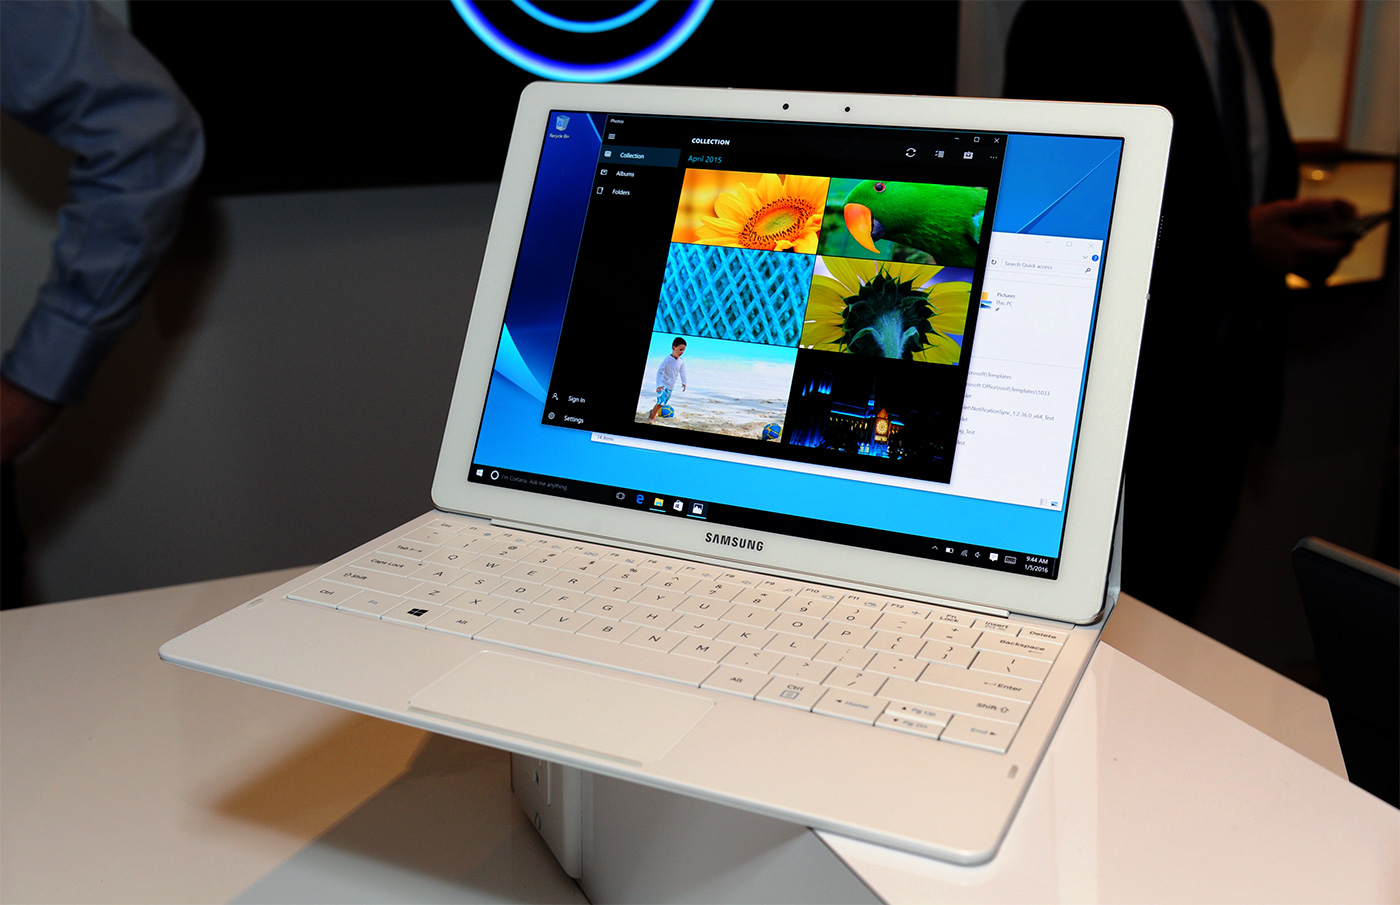 Samsung's Galaxy TabPro S is a crazy-thin Windows 10 2-in1